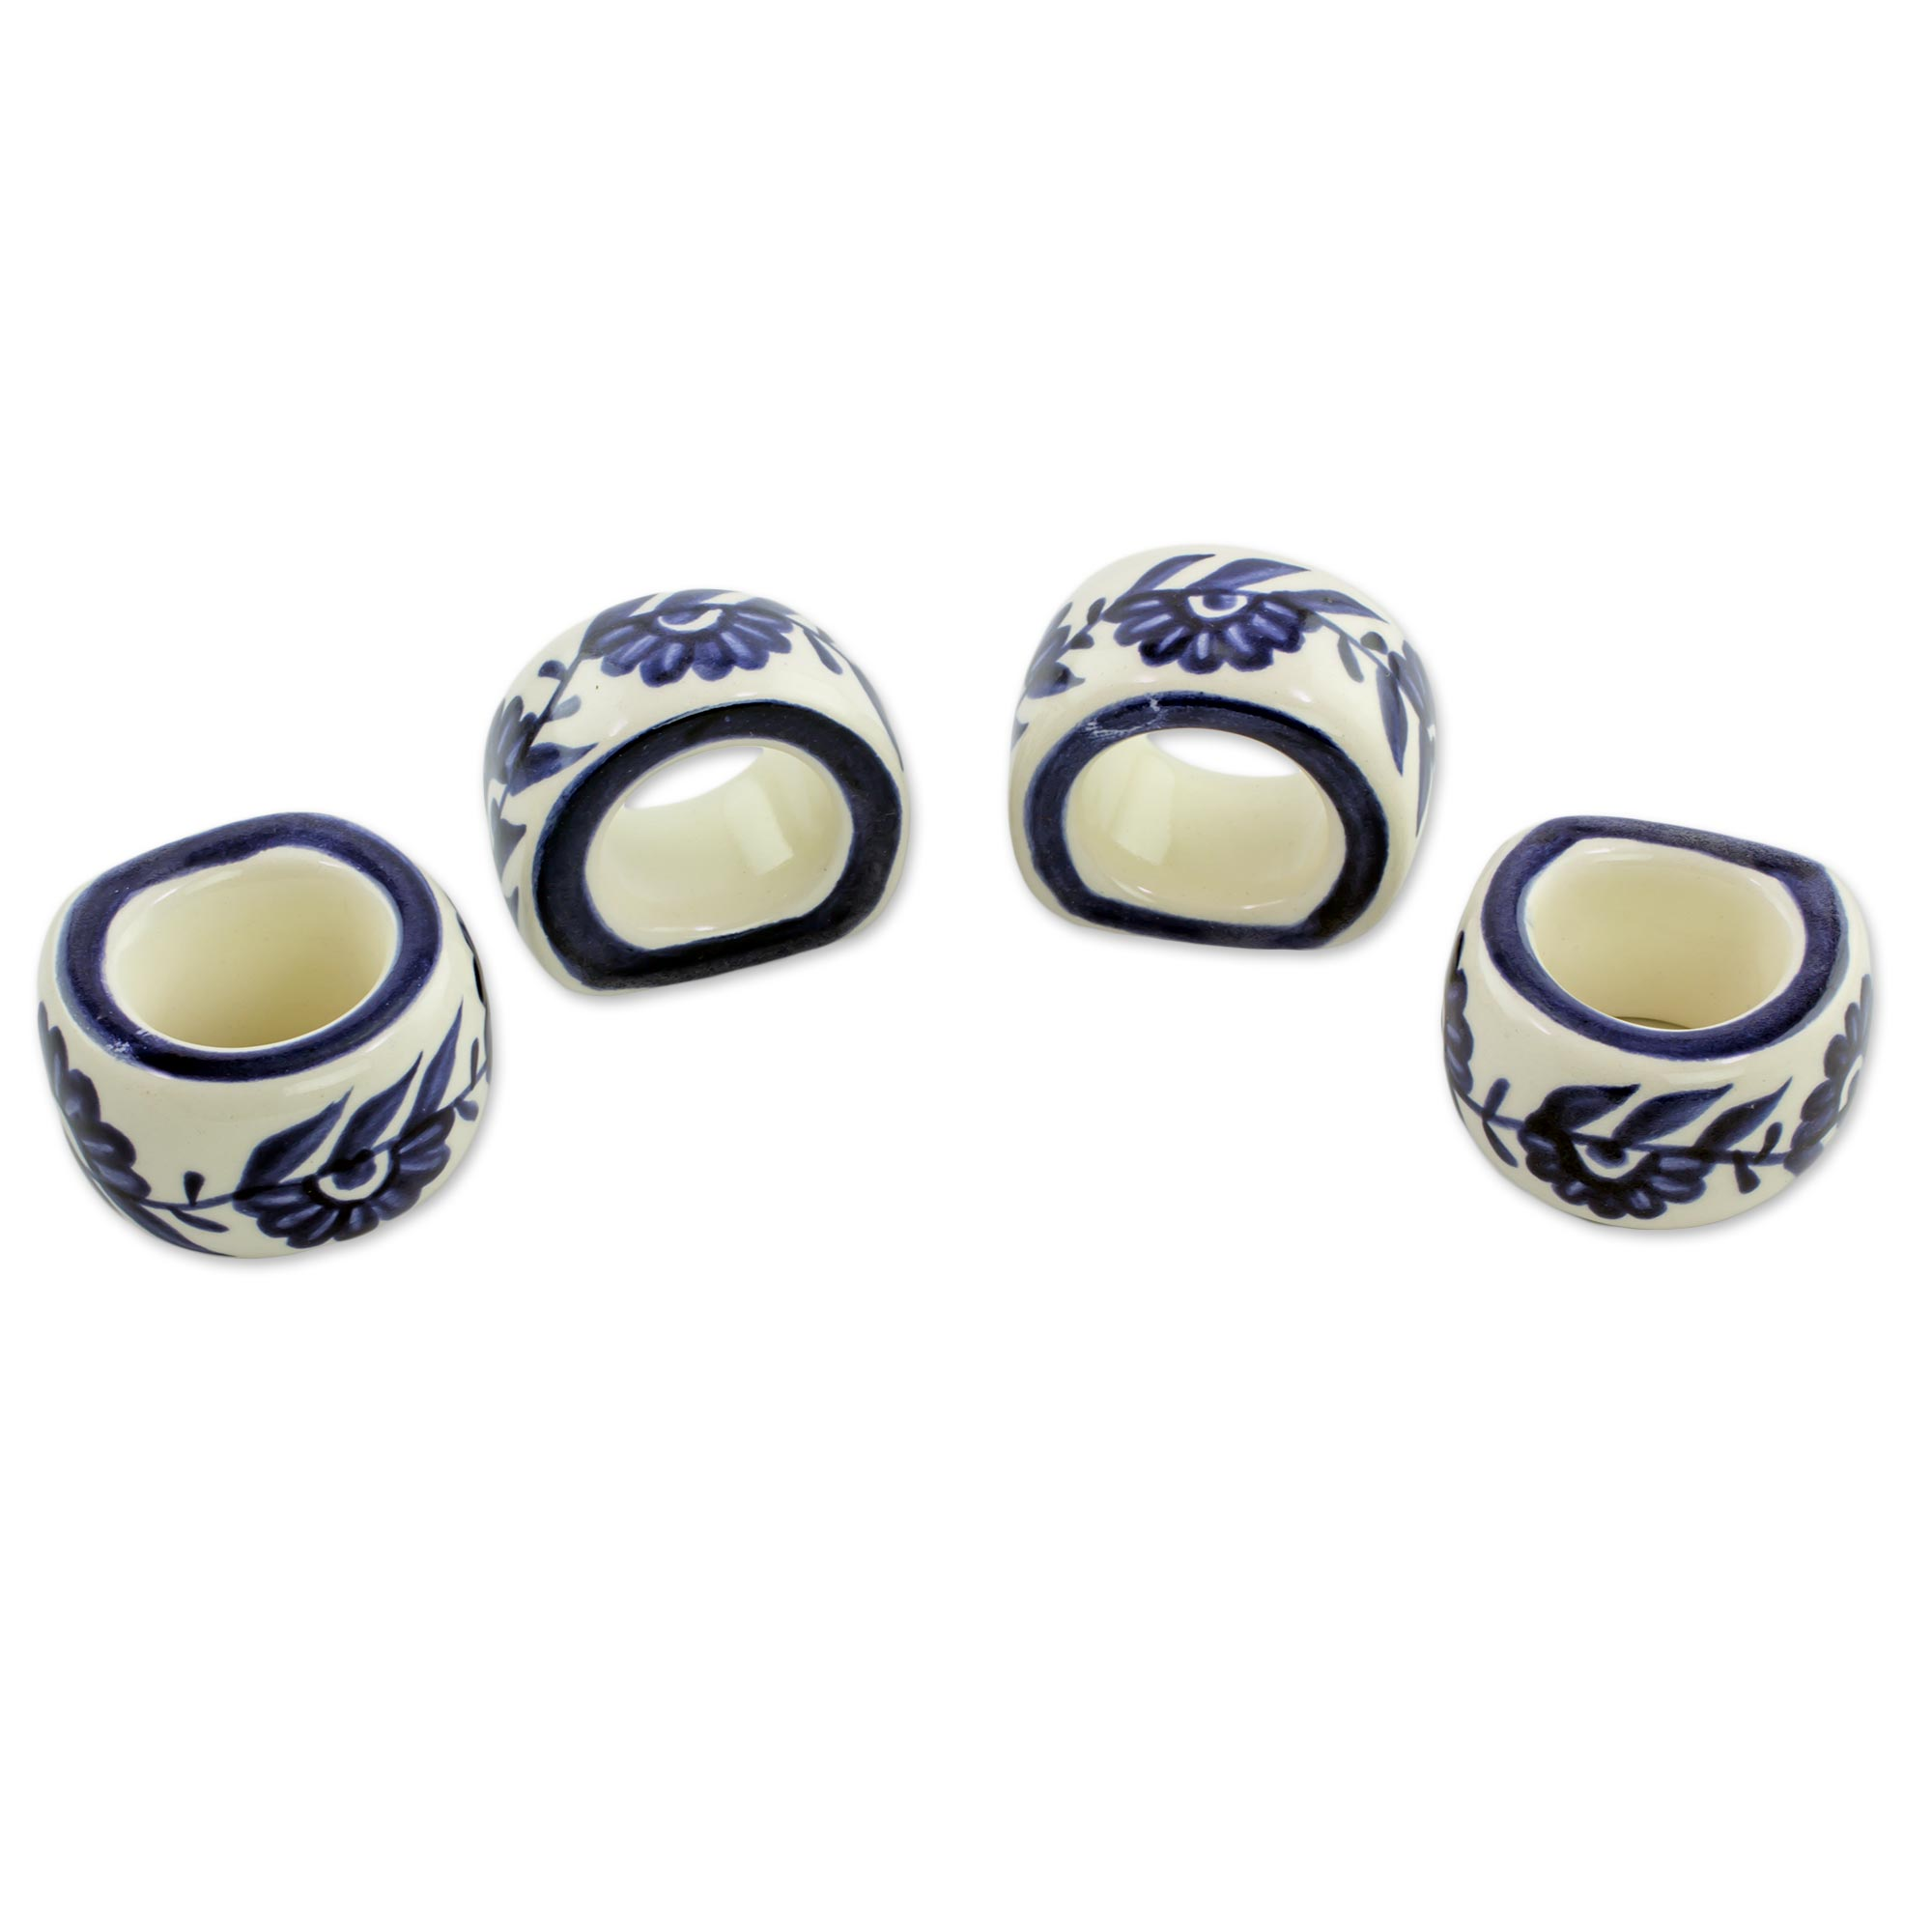 Unicef Uk Market Artisan Crafted Ceramic Floral Napkin Rings Set Of 4 Girasol